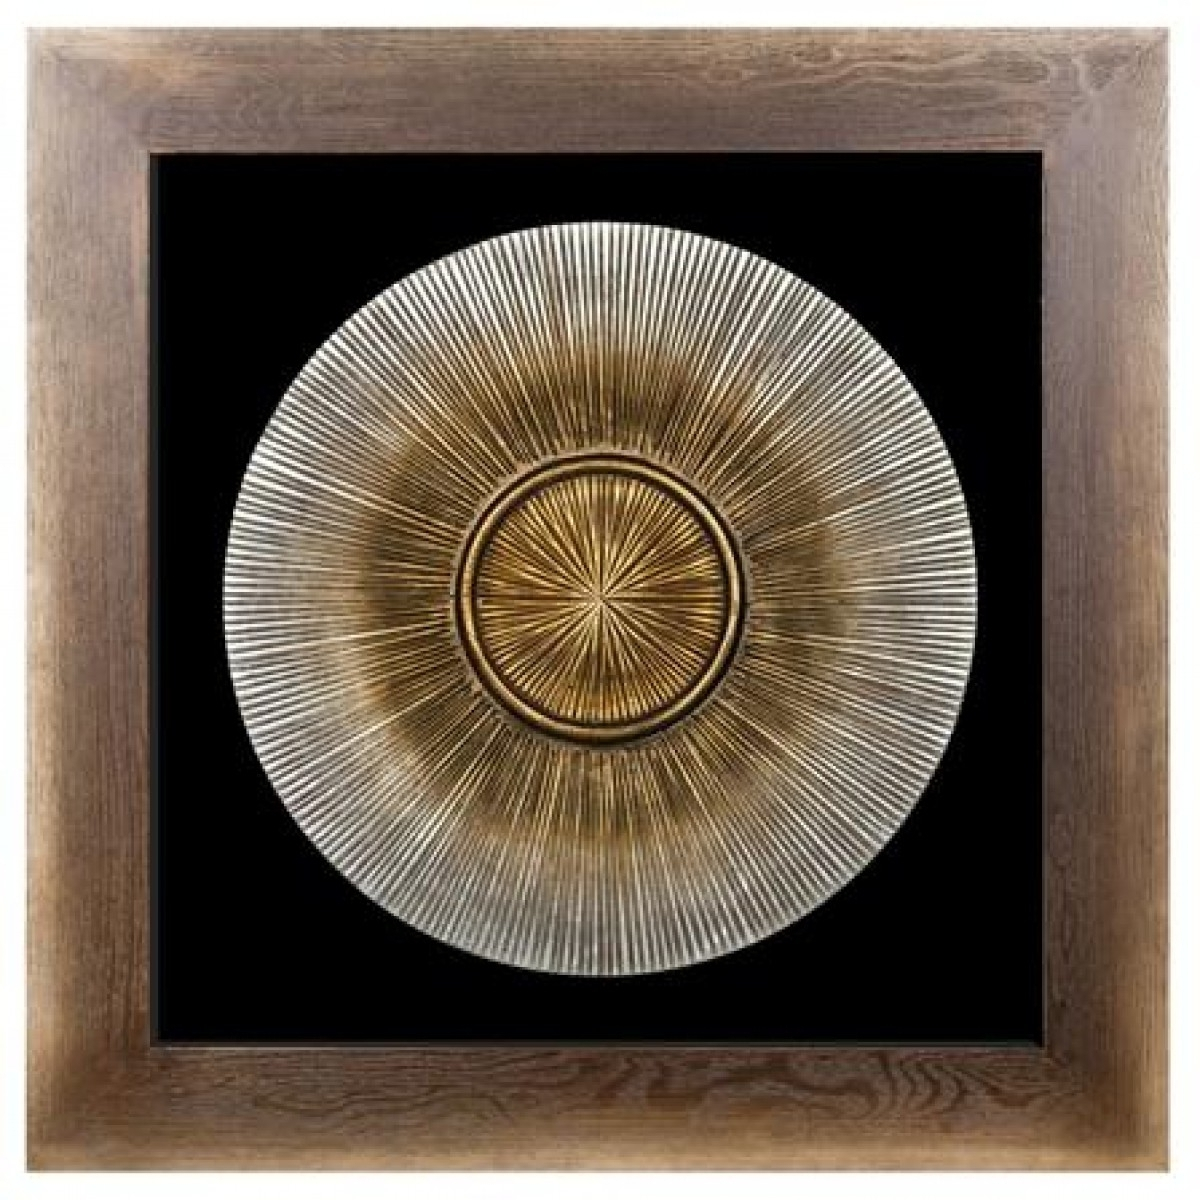 Most Recent Round Wood Wall Art Designs Wood Wall Artwork Together With Round Inside Round Wood Wall Art (View 5 of 15)